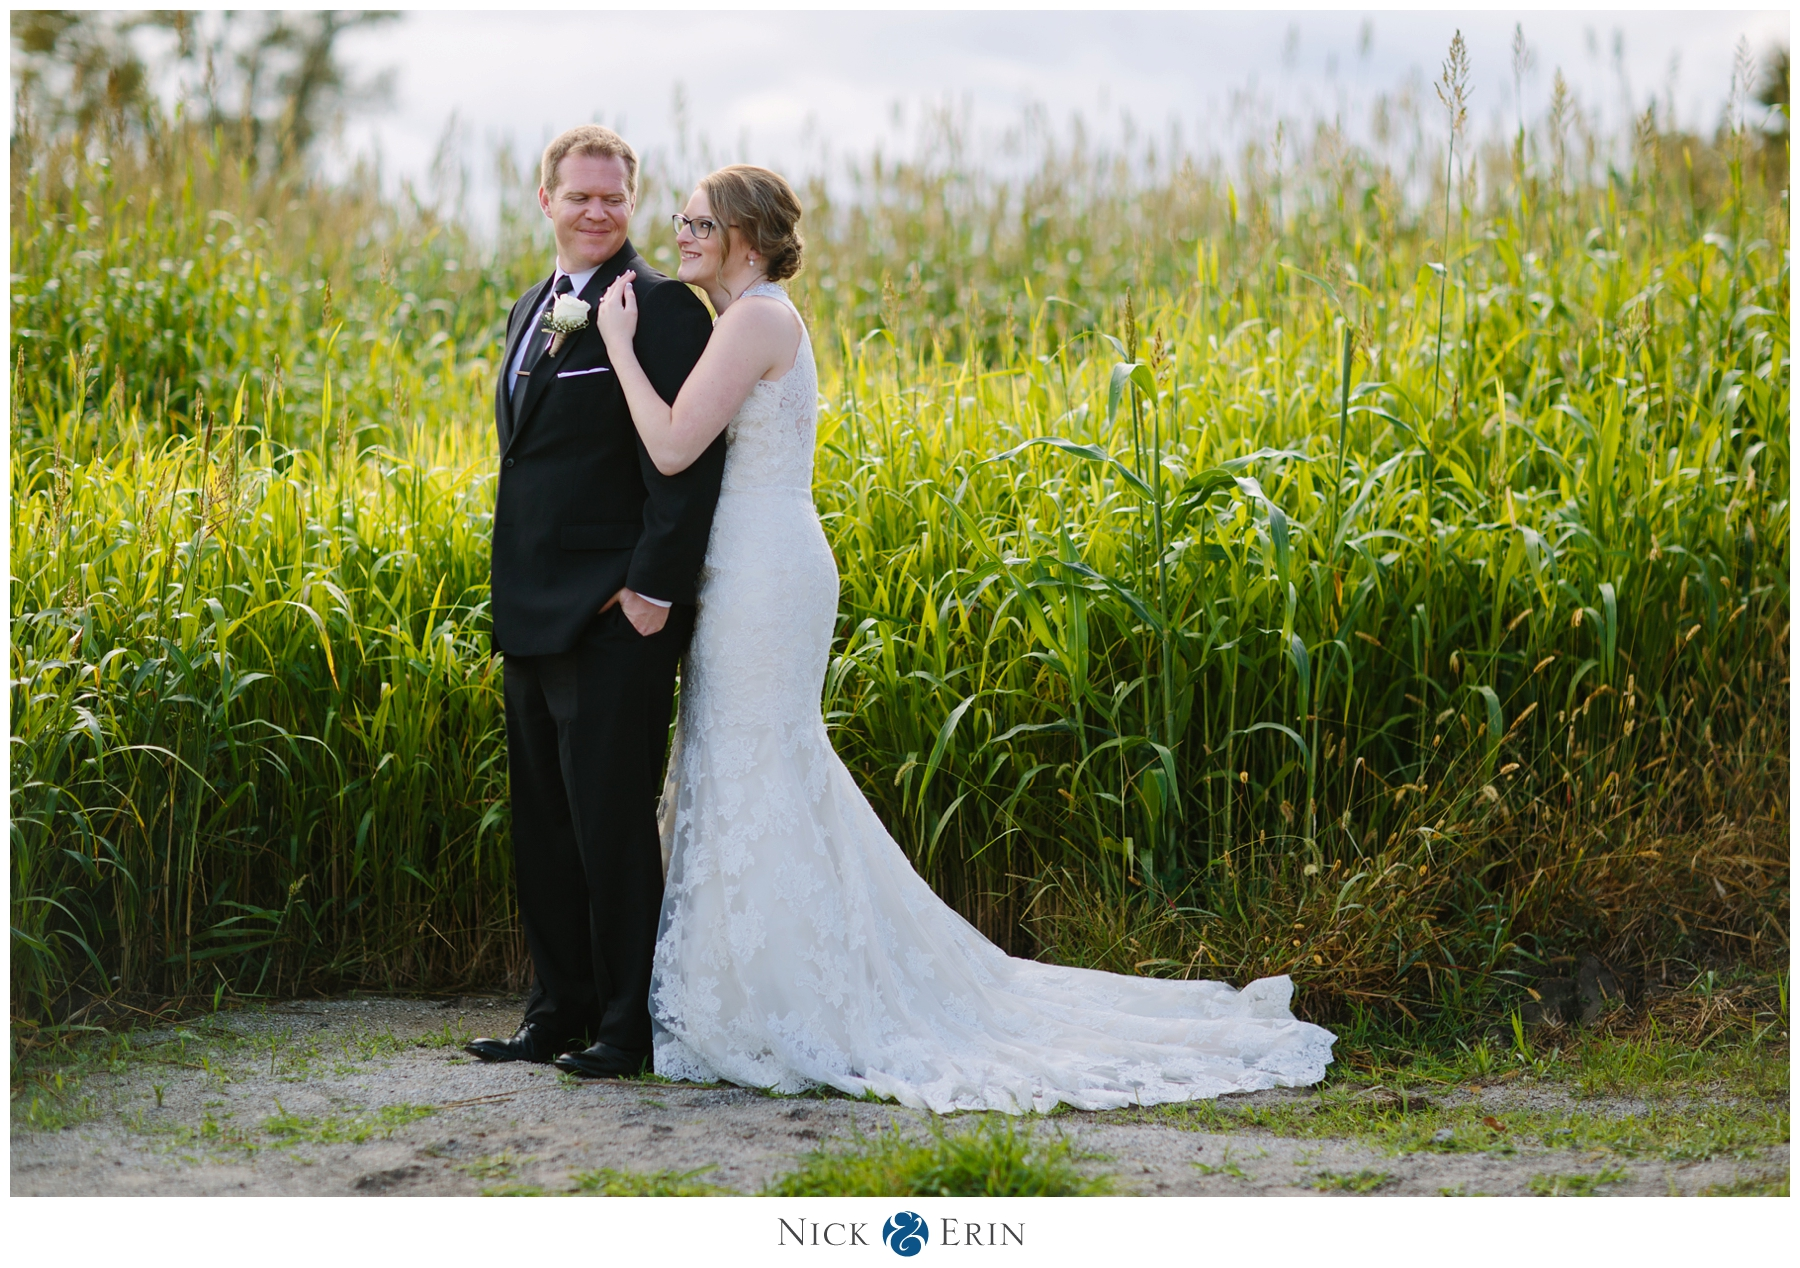 donner_photography_iowa-wedding_katie-chris_0030